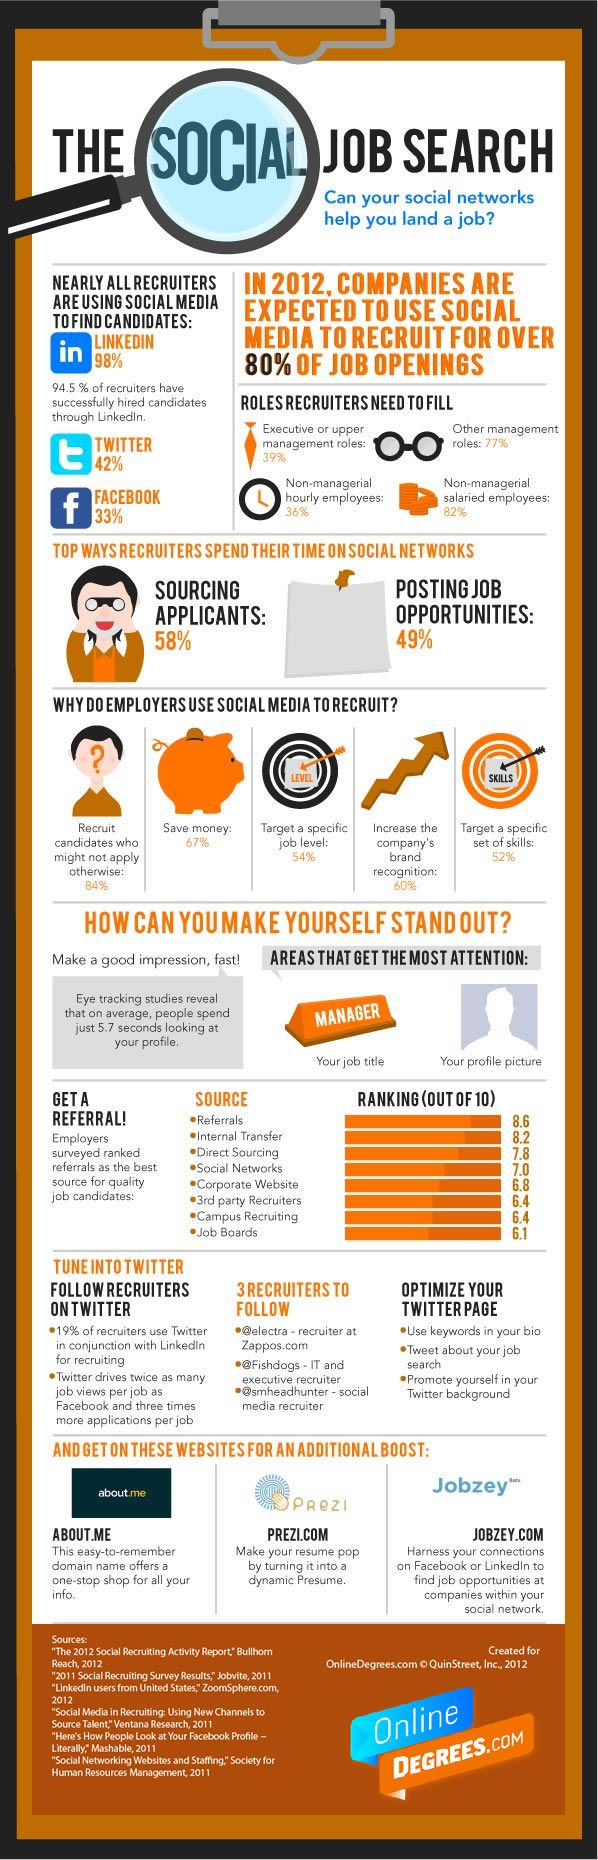 Social Recruiting: How to Use